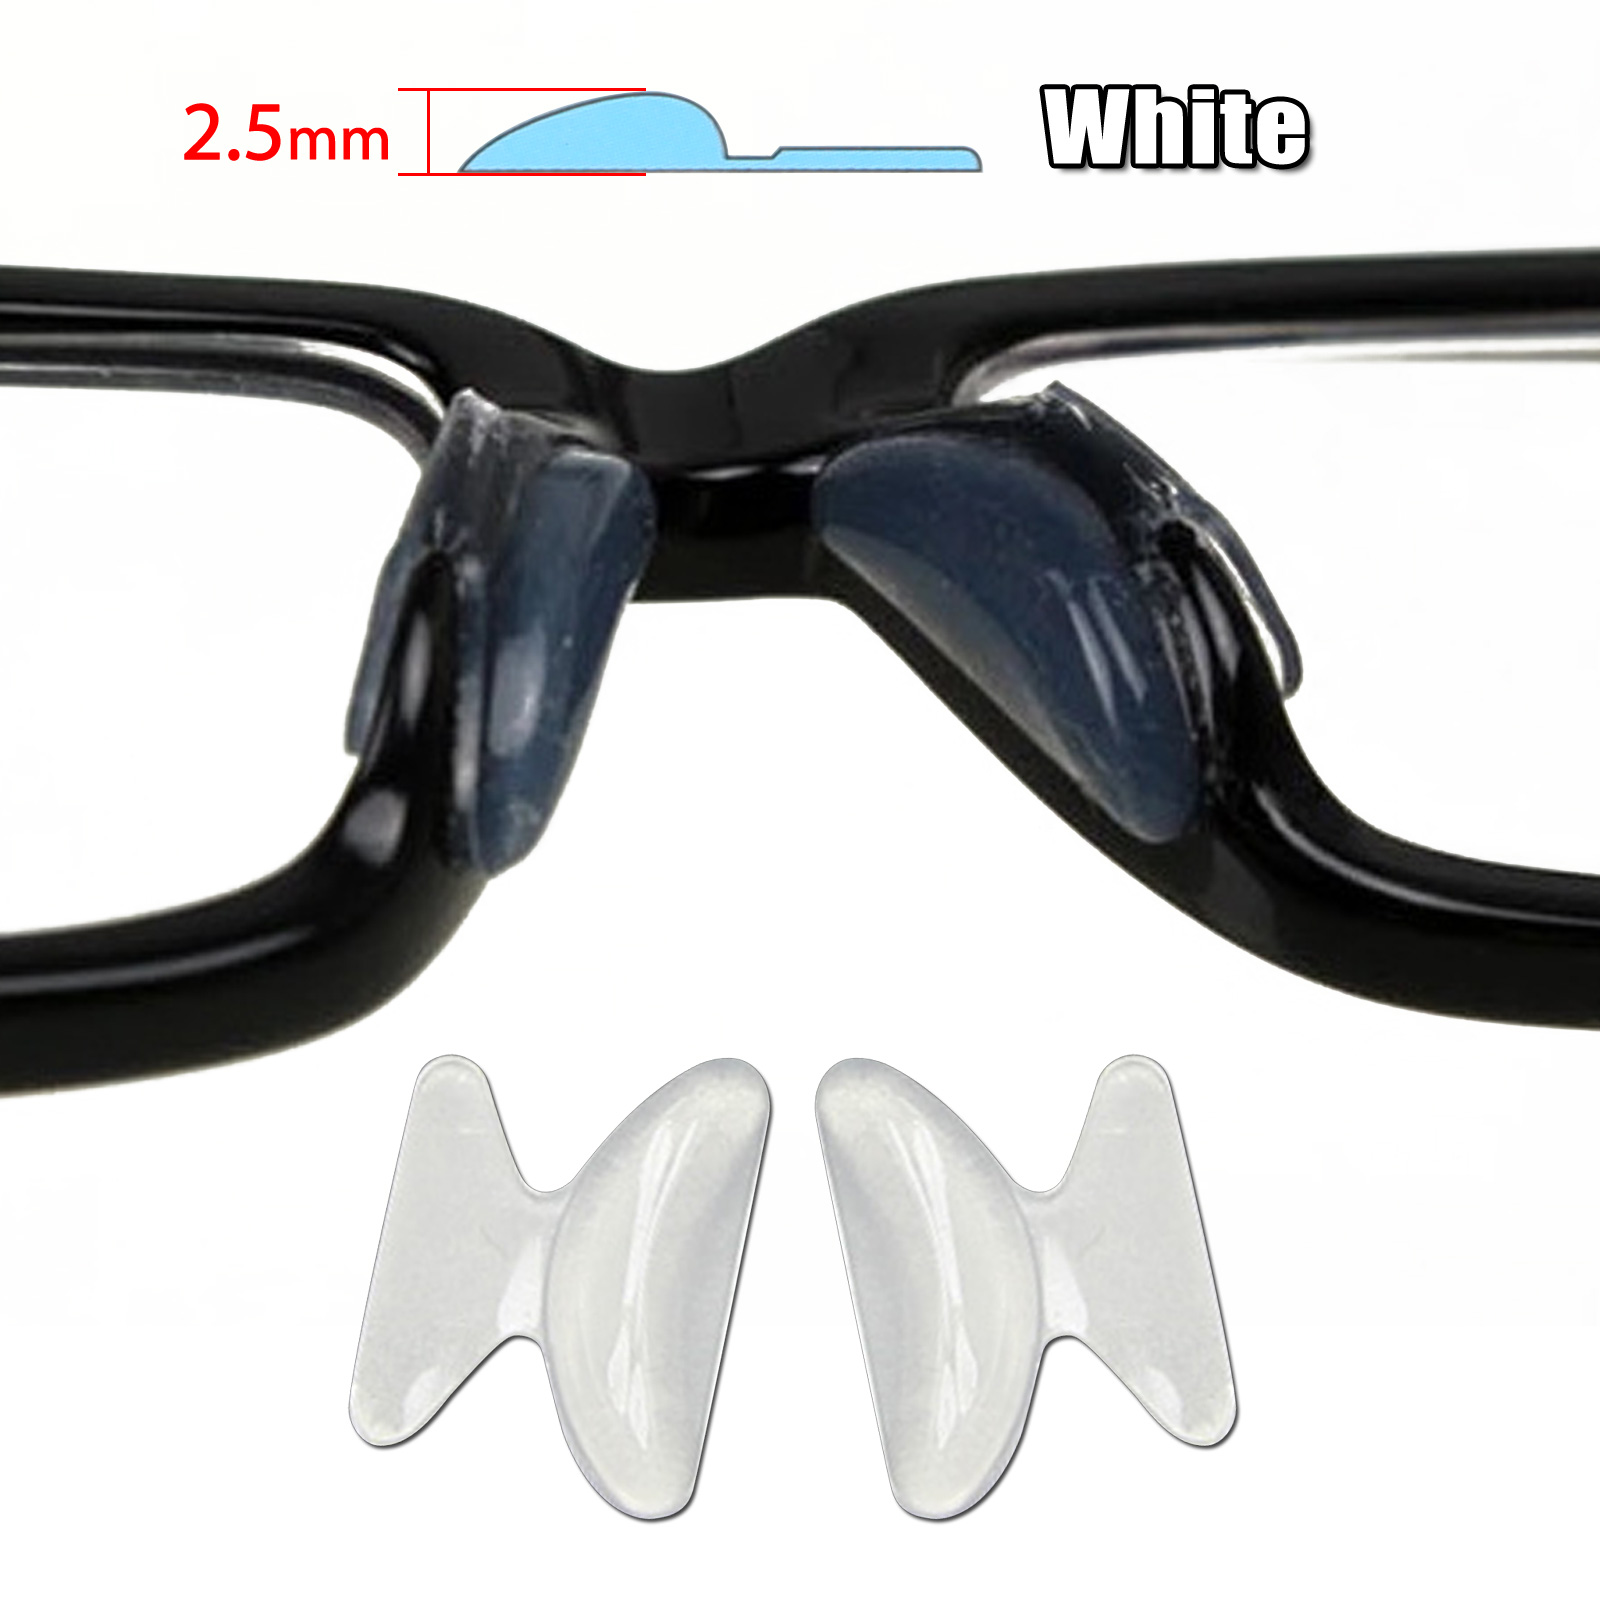 6 Pairs Silicone Anti-Slip Stick On Nose Pads for Eyeglass ...